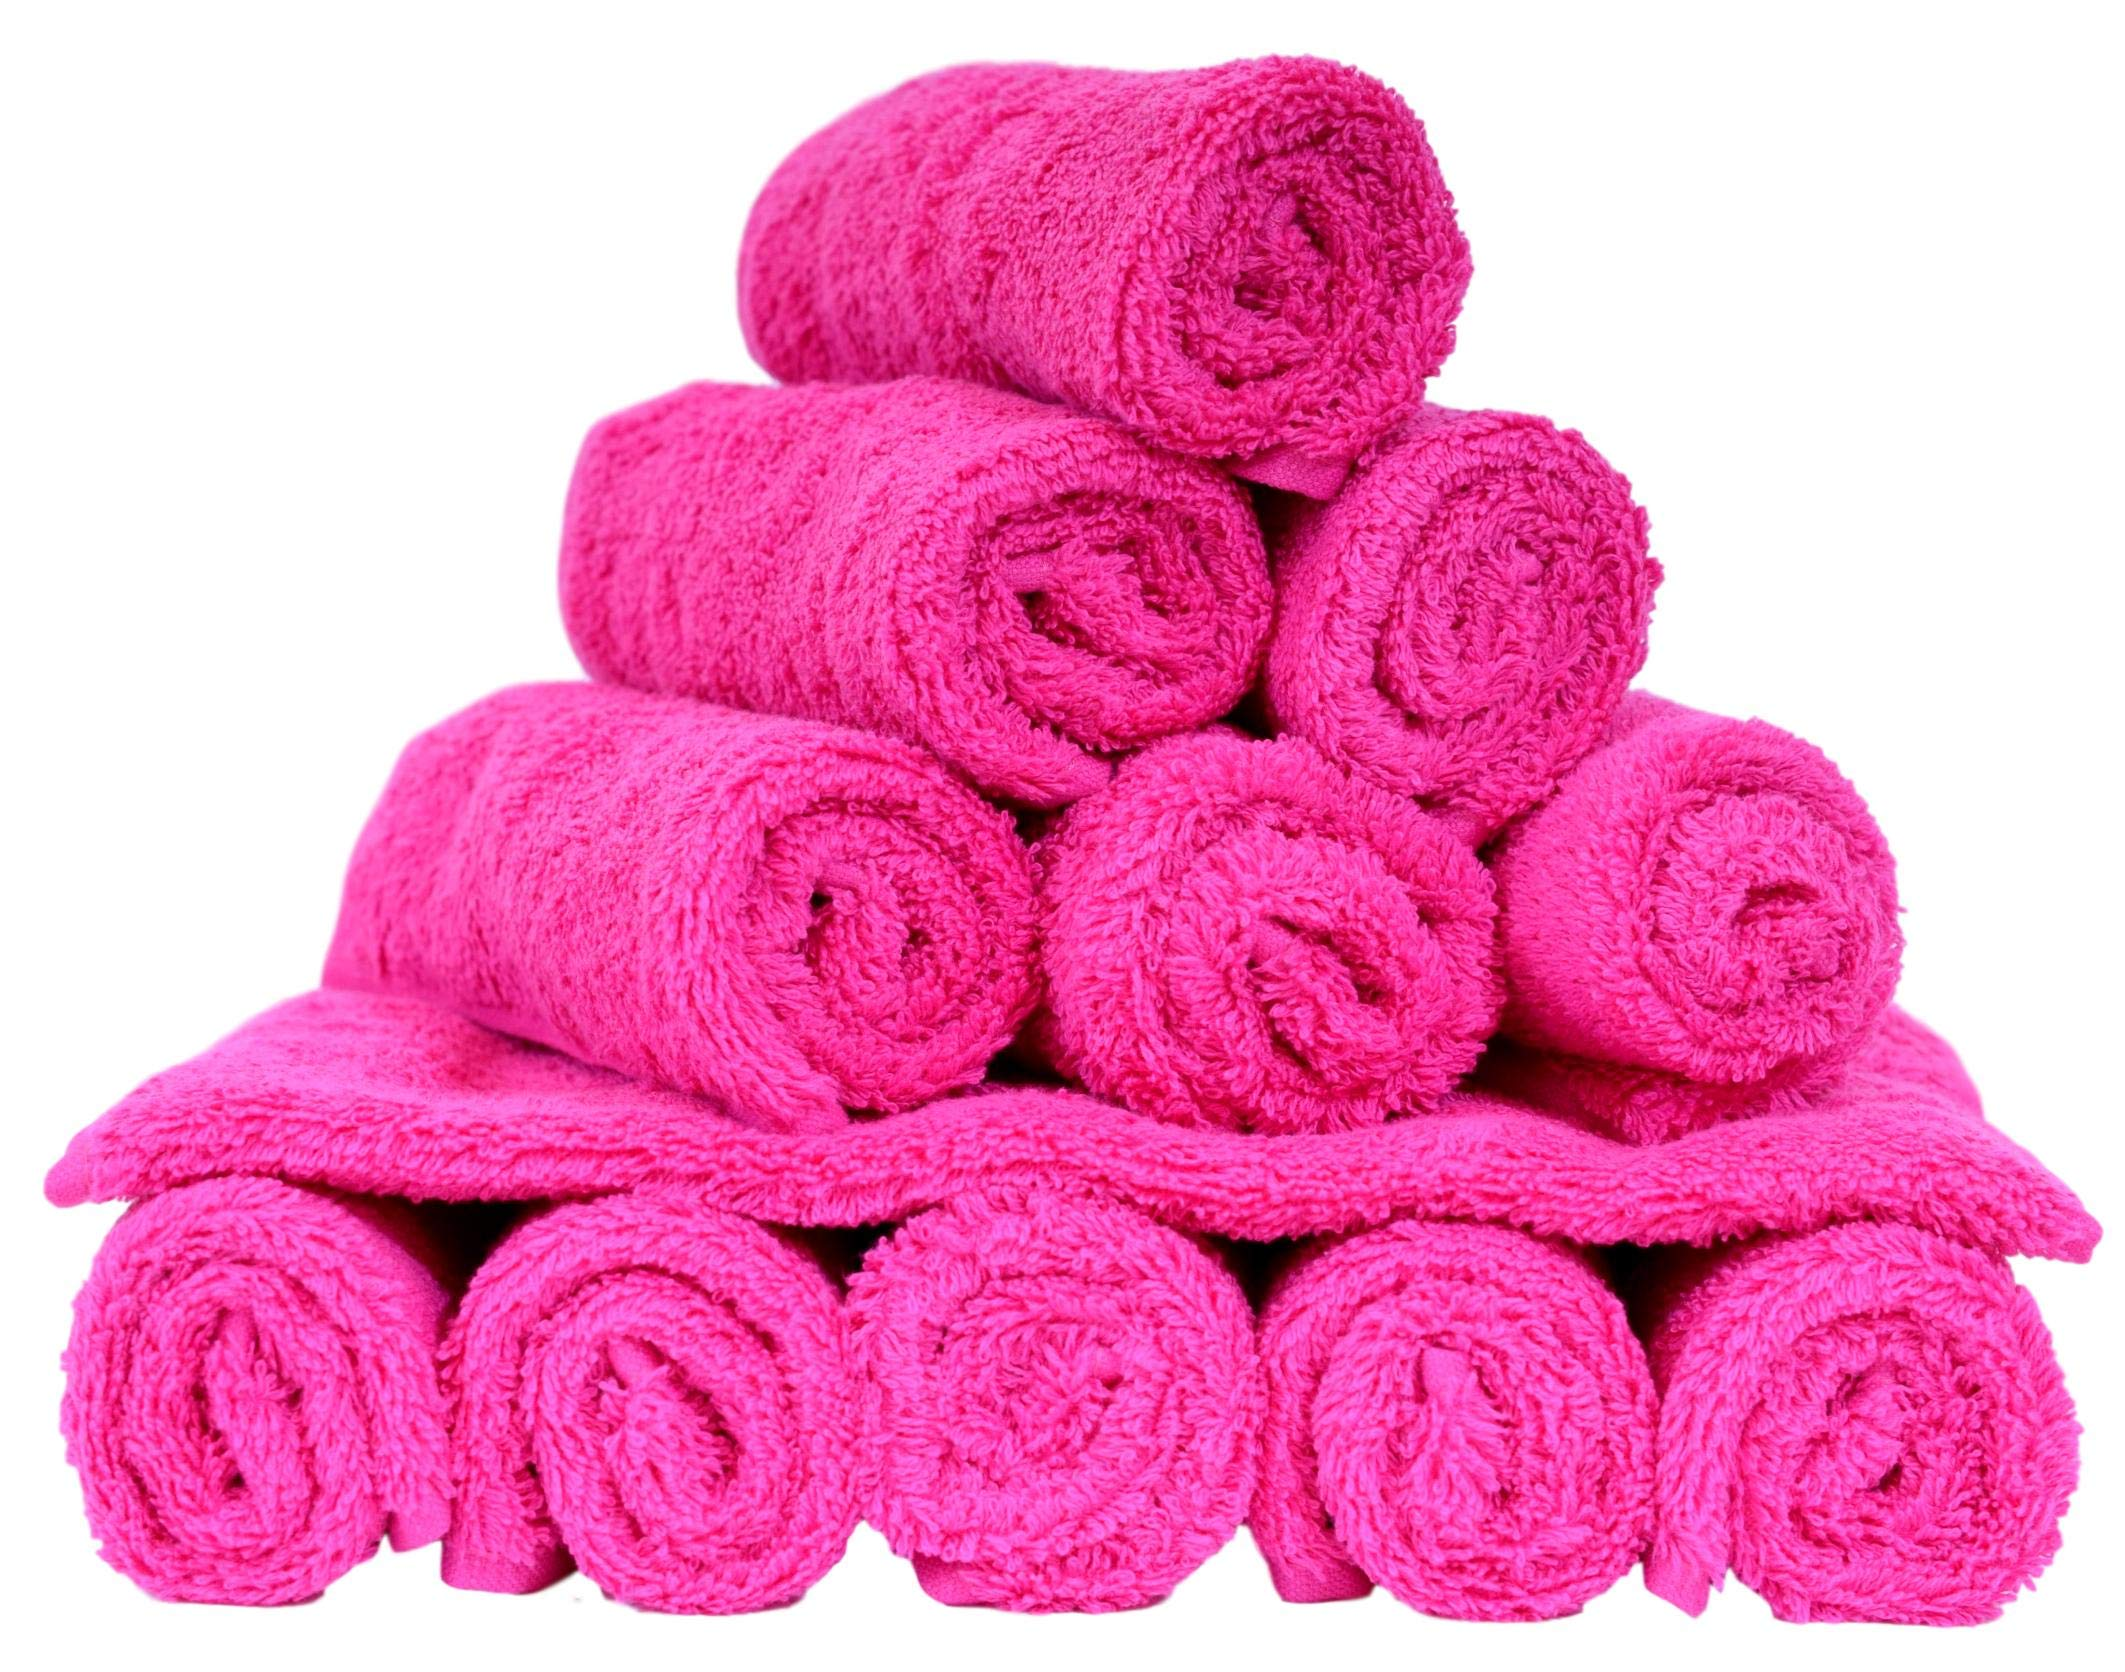 100% Turkish Soft Cotton Washcloth, Made in Turkey (Set of 12, Hot Pink) by Turquoise Textile